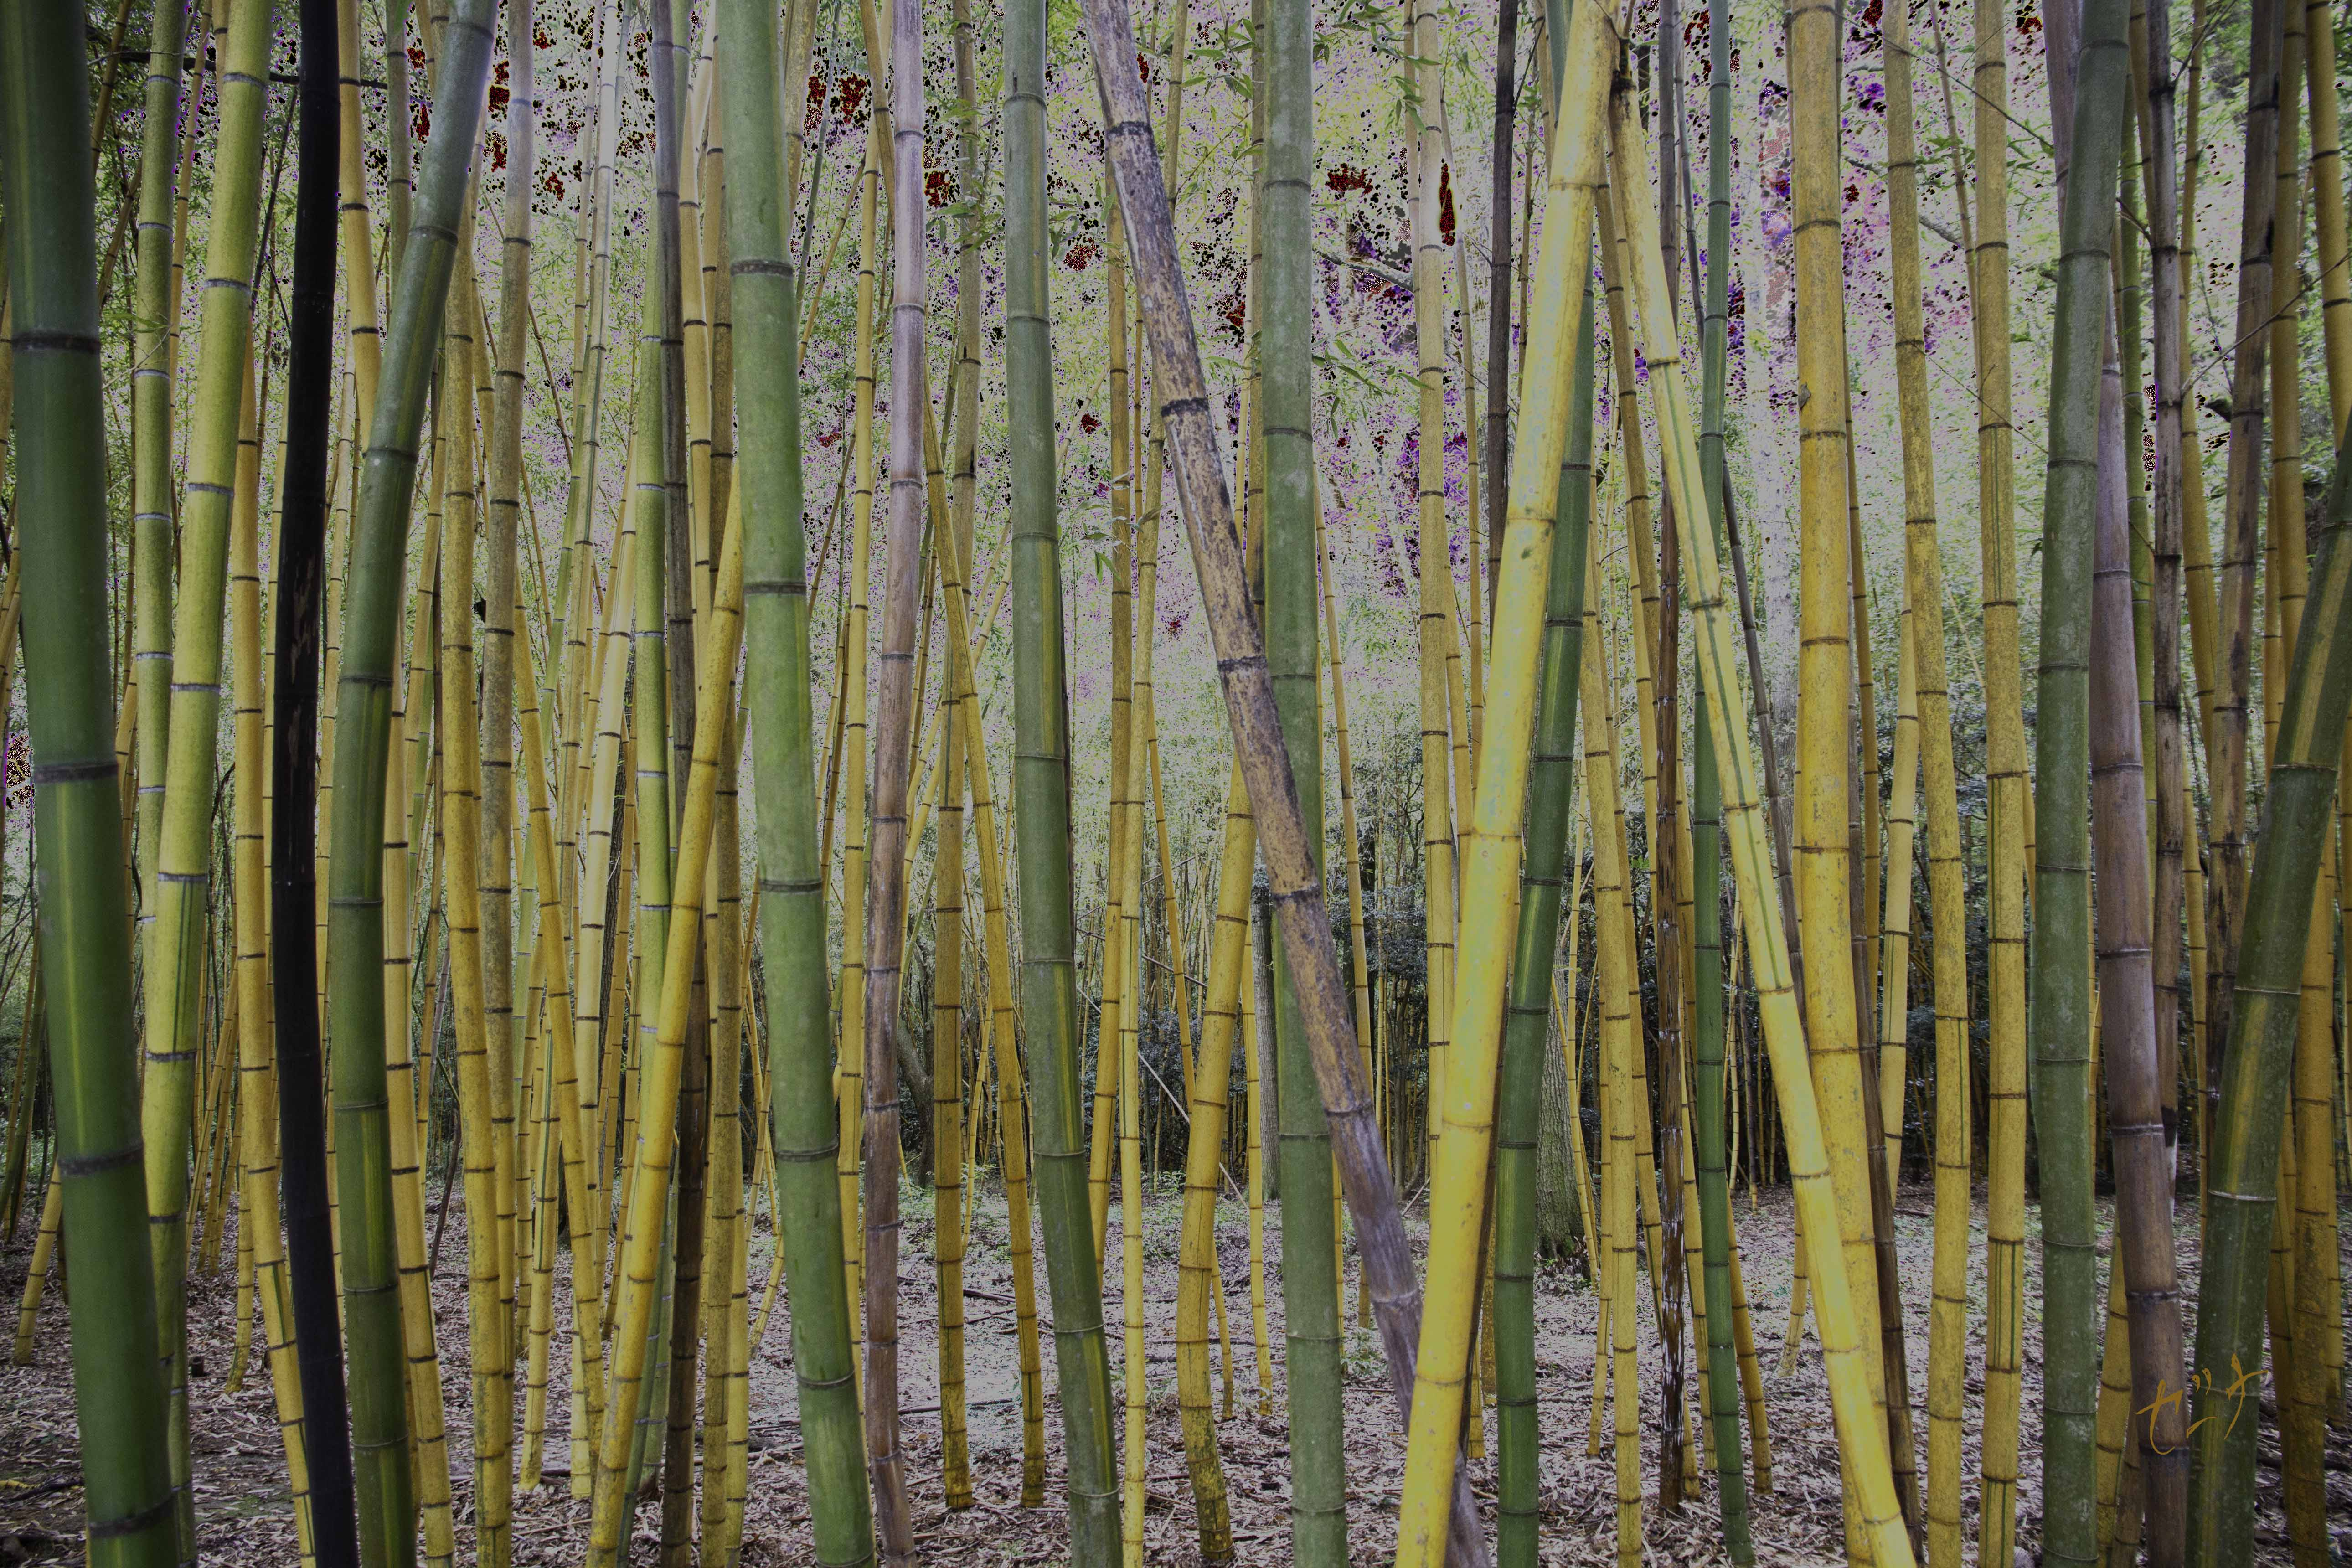 Bamboo-zzle